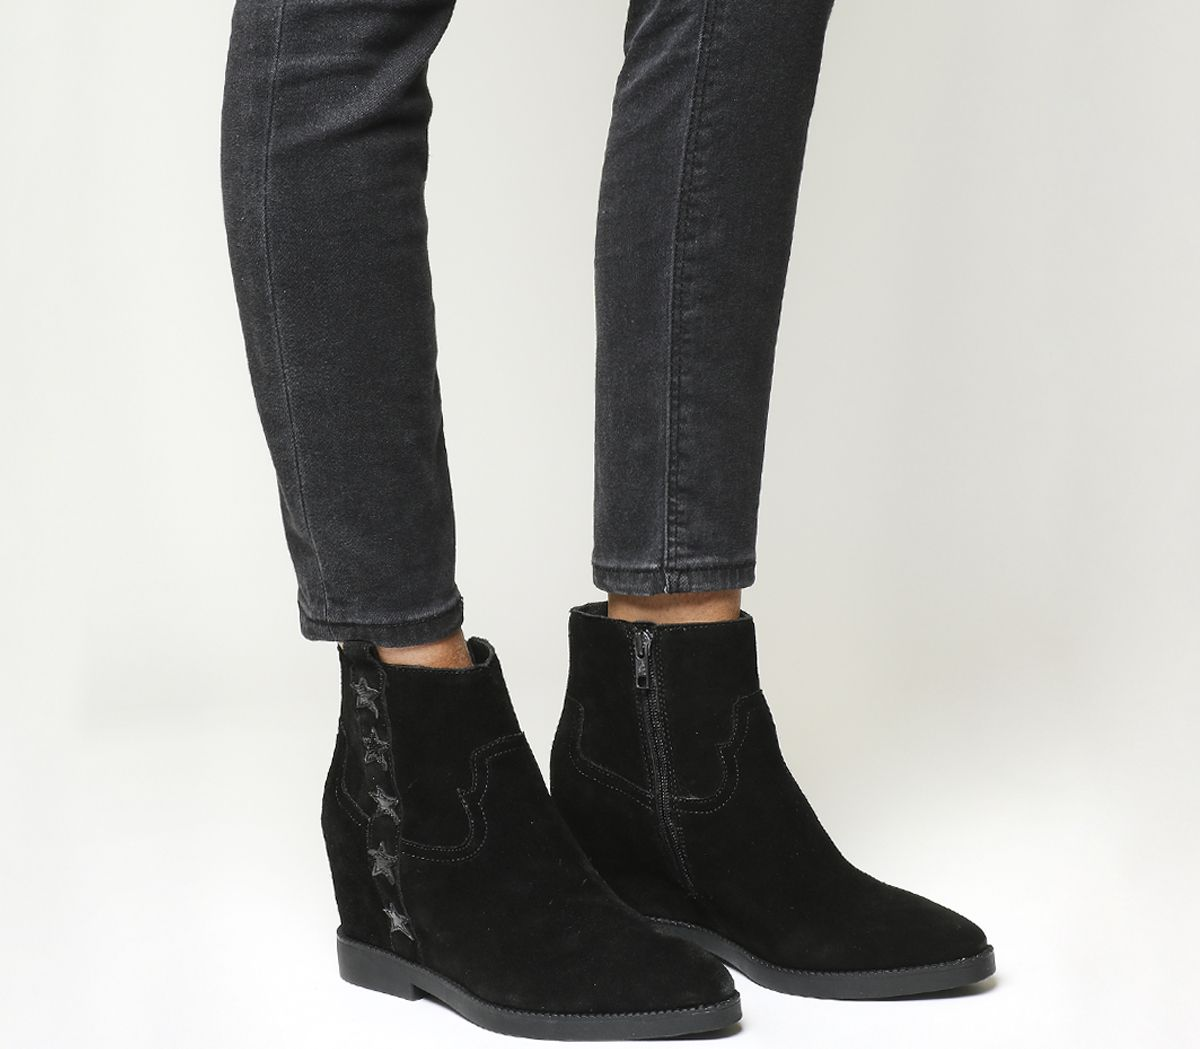 67ab6c3584f Ash Goldie Wedge Boots Black Suede - Ankle Boots